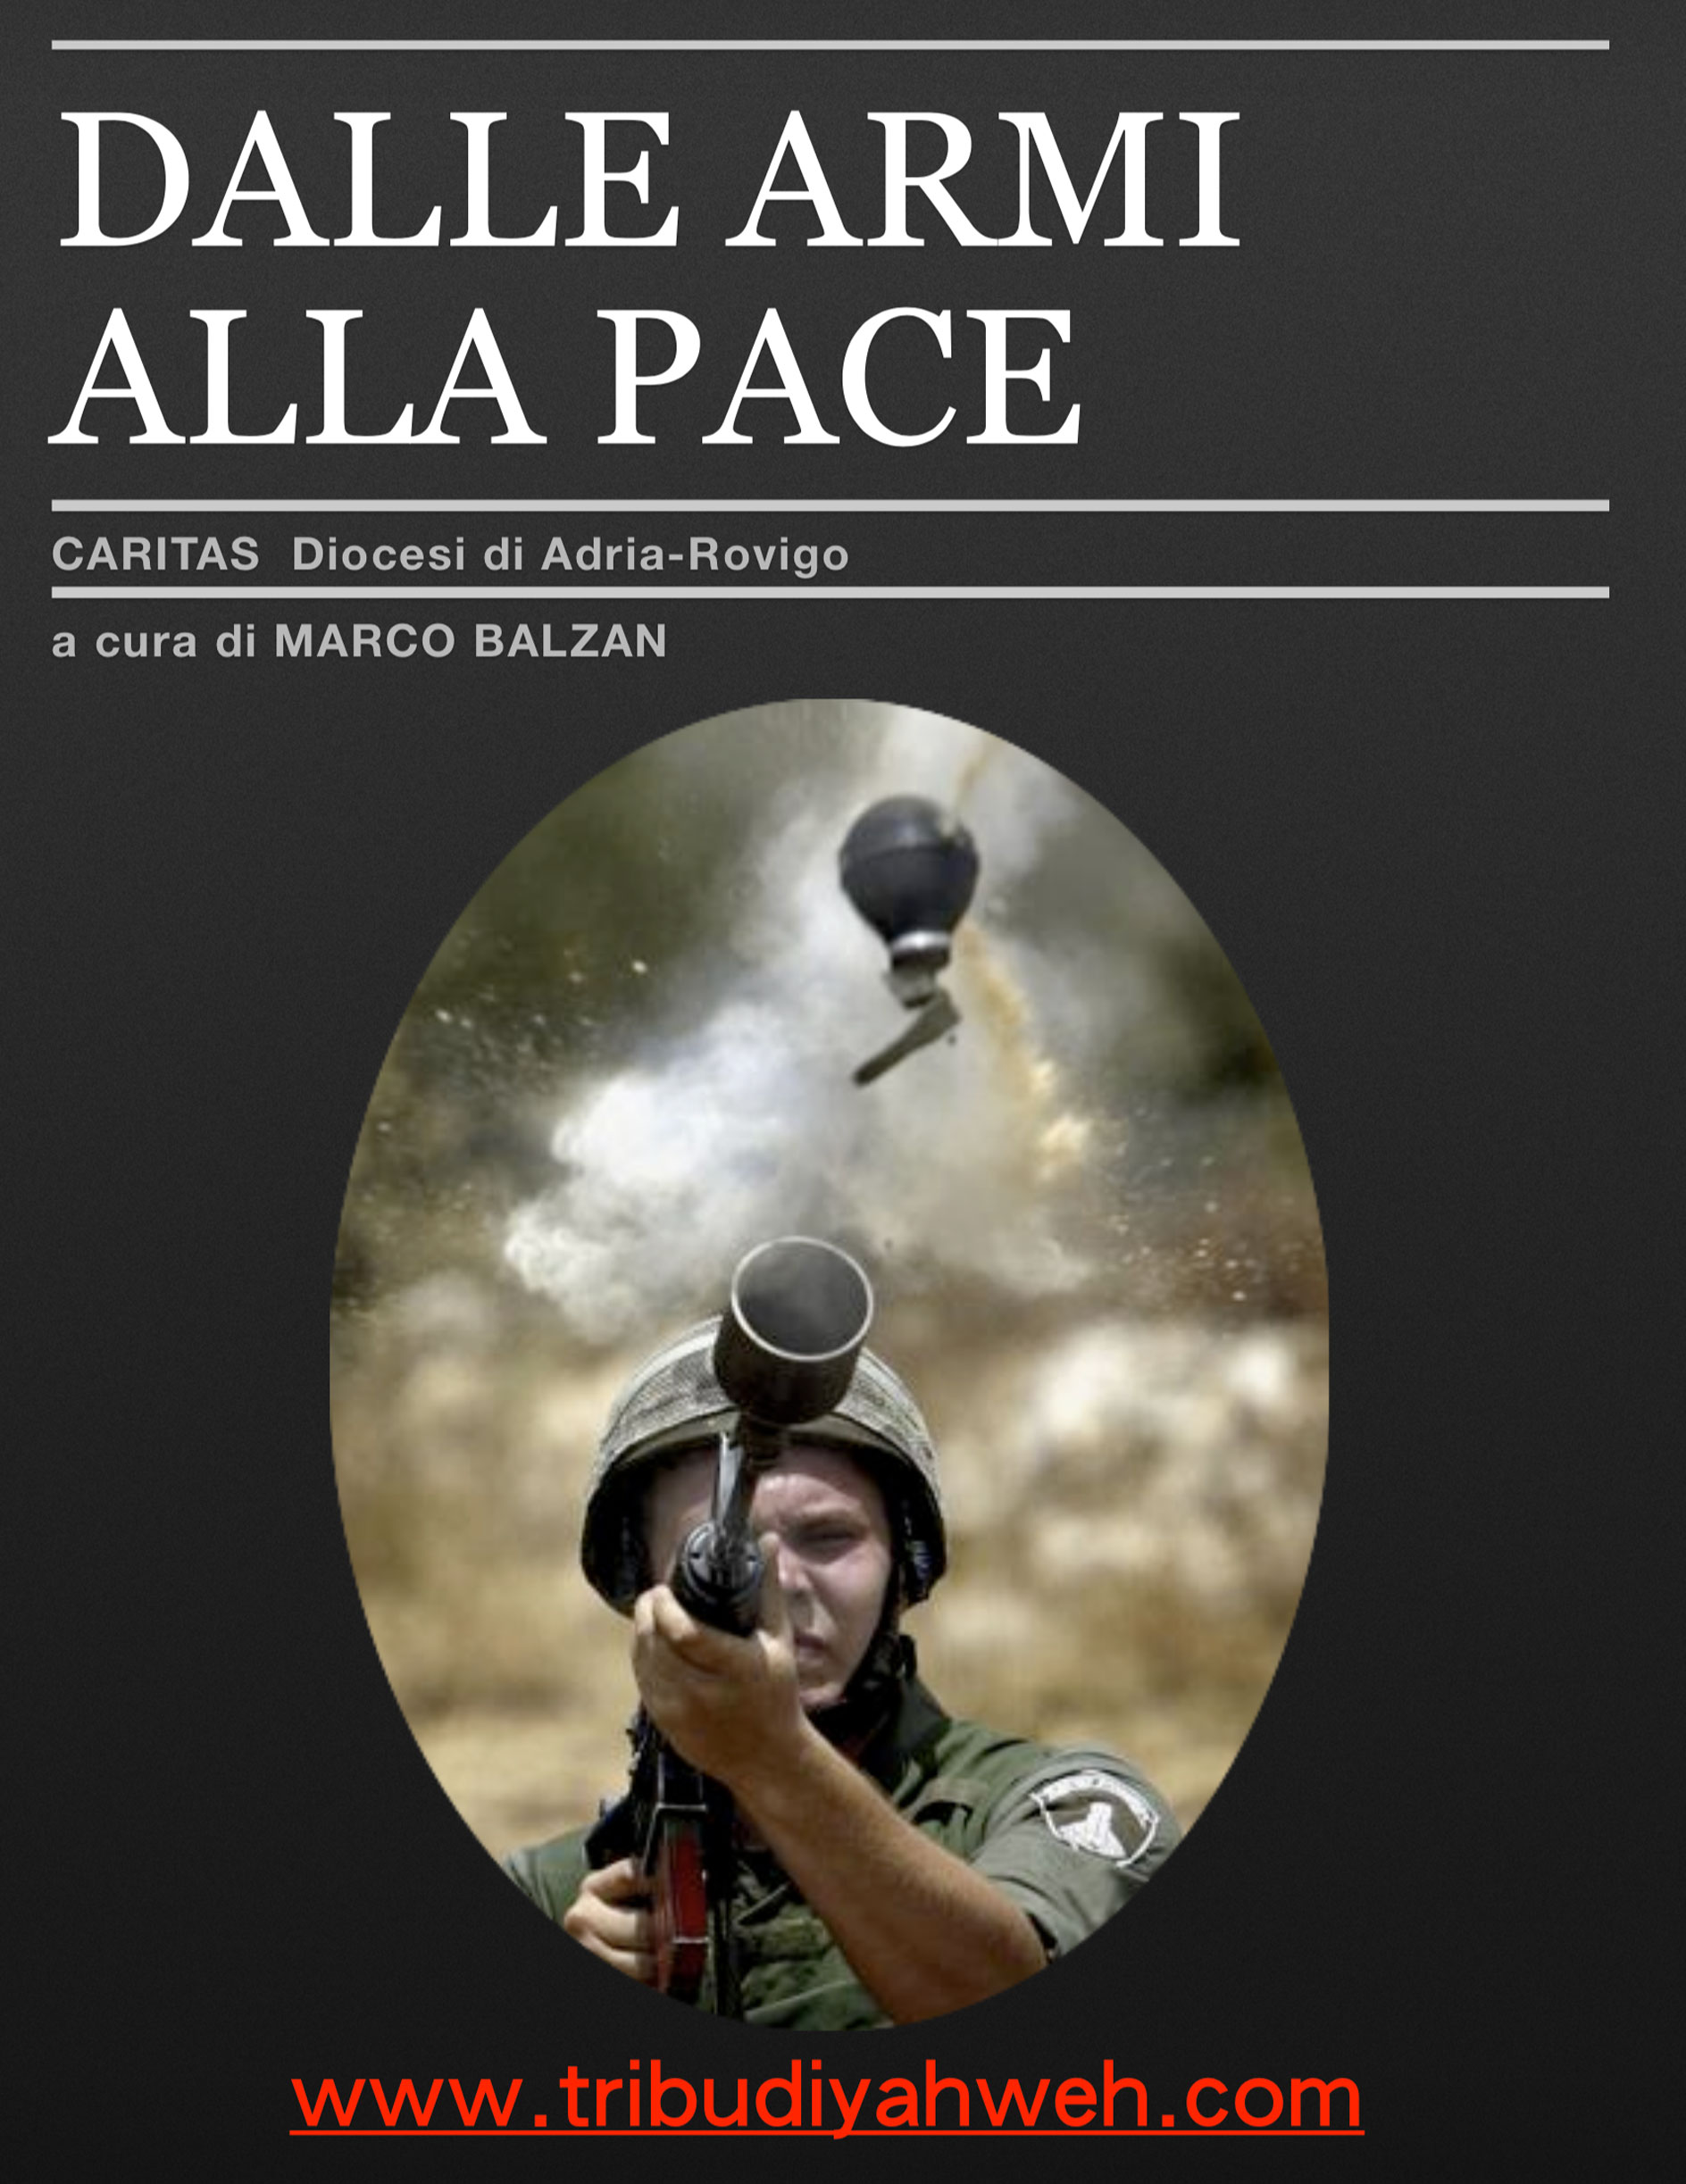 http://www.tribudiyahweh.com/wp/wp-content/uploads/2019/03/dalle-armi-alla-pace.jpg